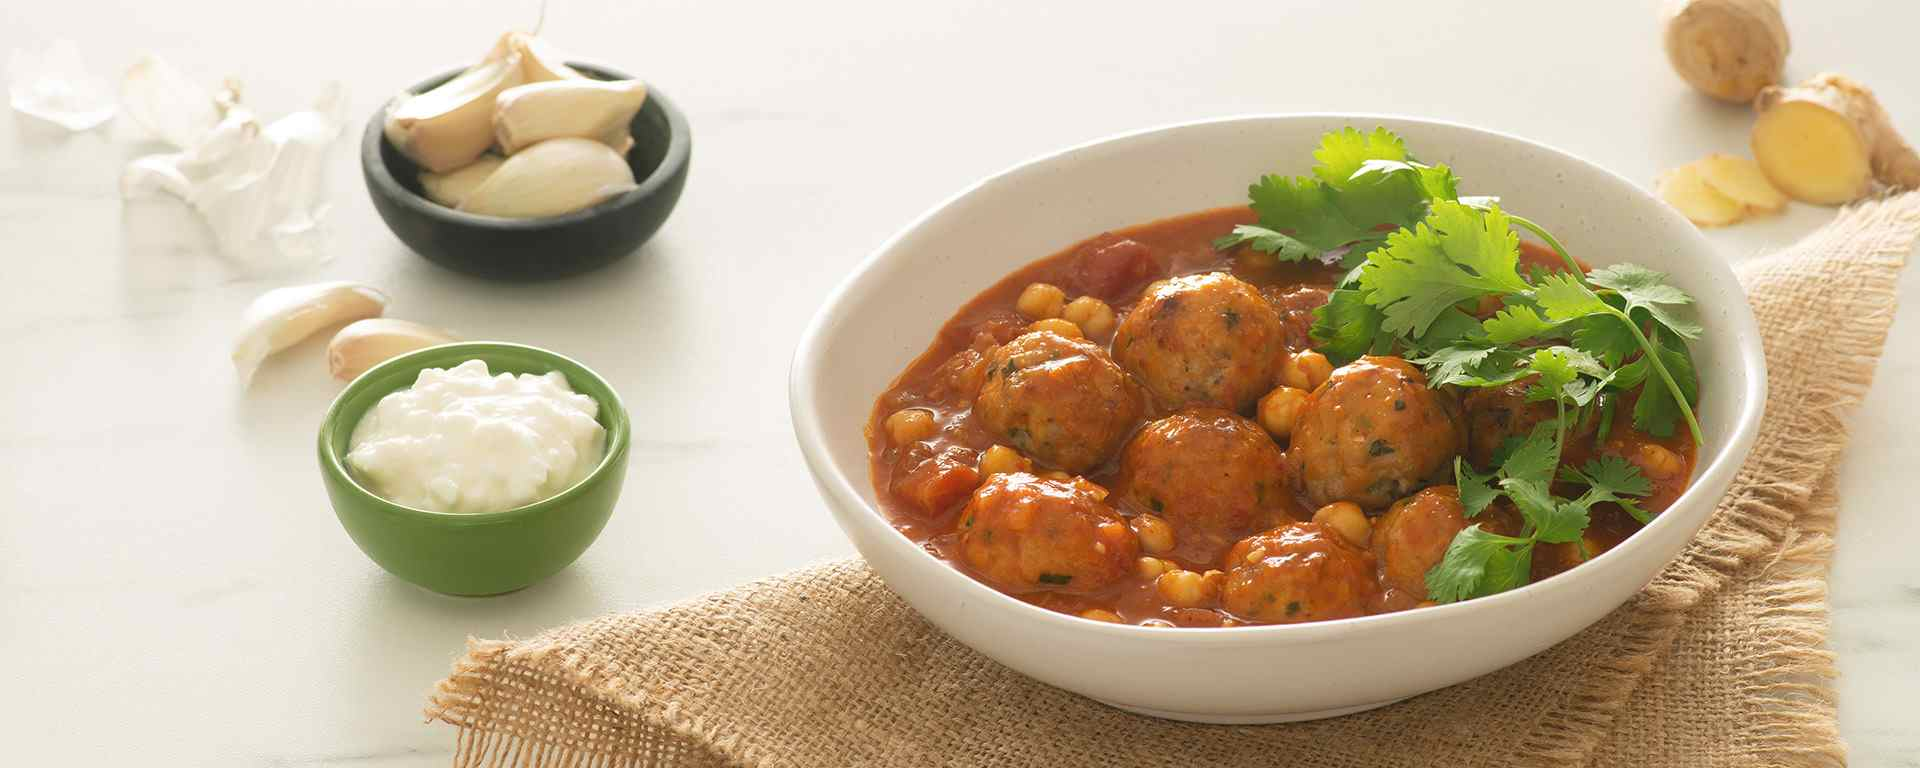 Photo for - Chickpea and Turkey Meatball Coconut Curry